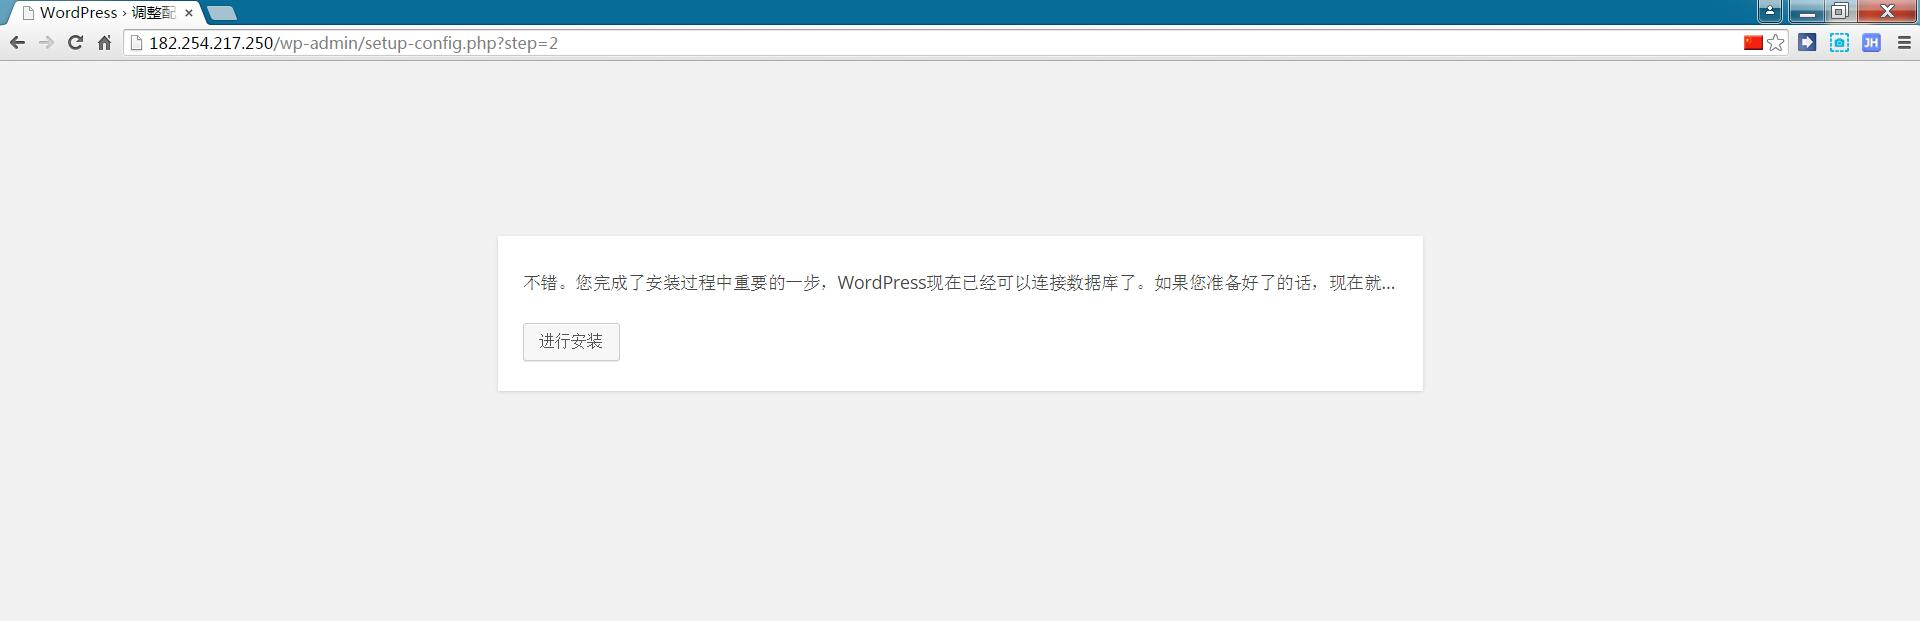 Wordpress程式搭建教程(Windows环境)